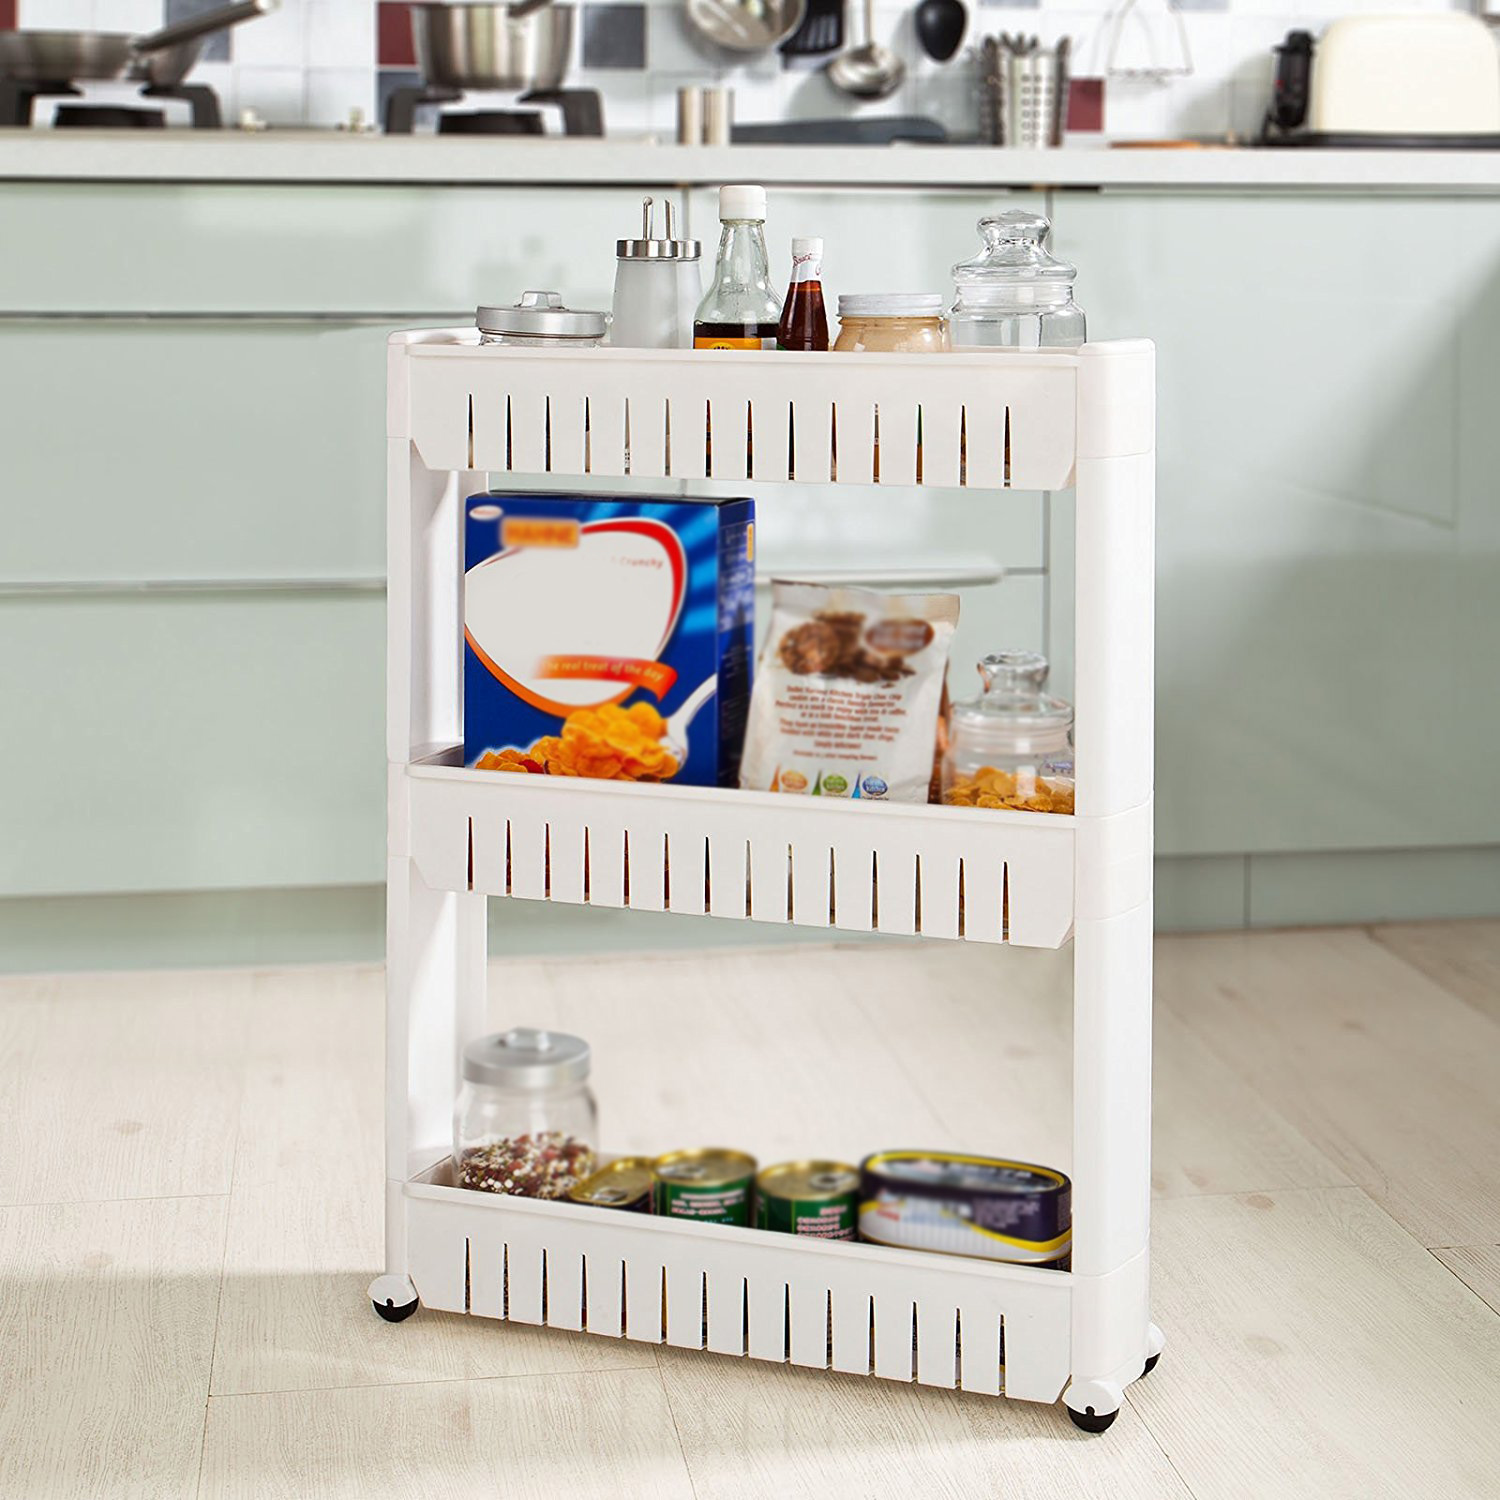 Three-layer Storage Racks 3 Tier Trolley Slide Out Storage Tower Holder Kitchen Trolley Bathroom Roll Kitchen Storage Racks HWC